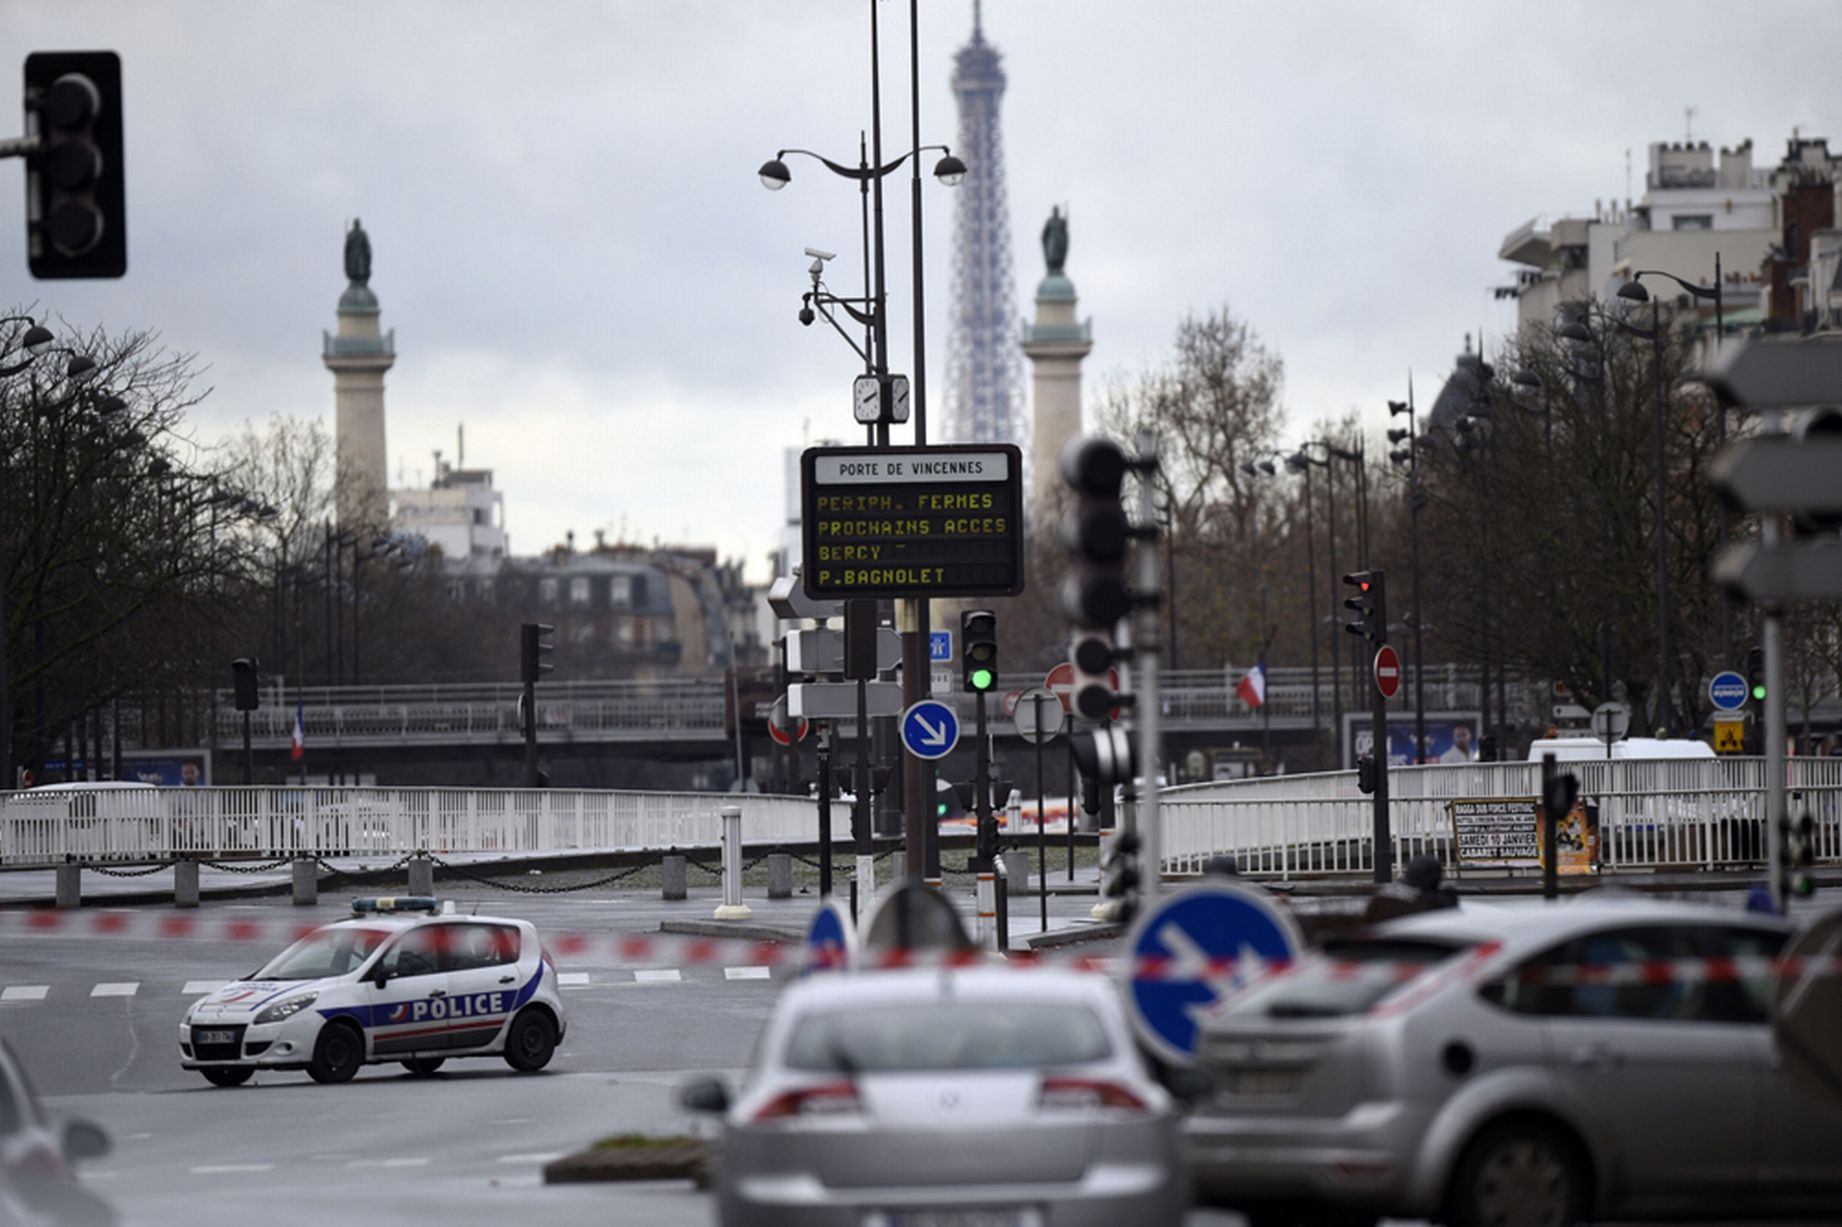 Charlie Hebdo shootings  Hostages held in a kosher grocery store in     Police forces gather together at Porte de Vincennes  east of Paris  after  at least